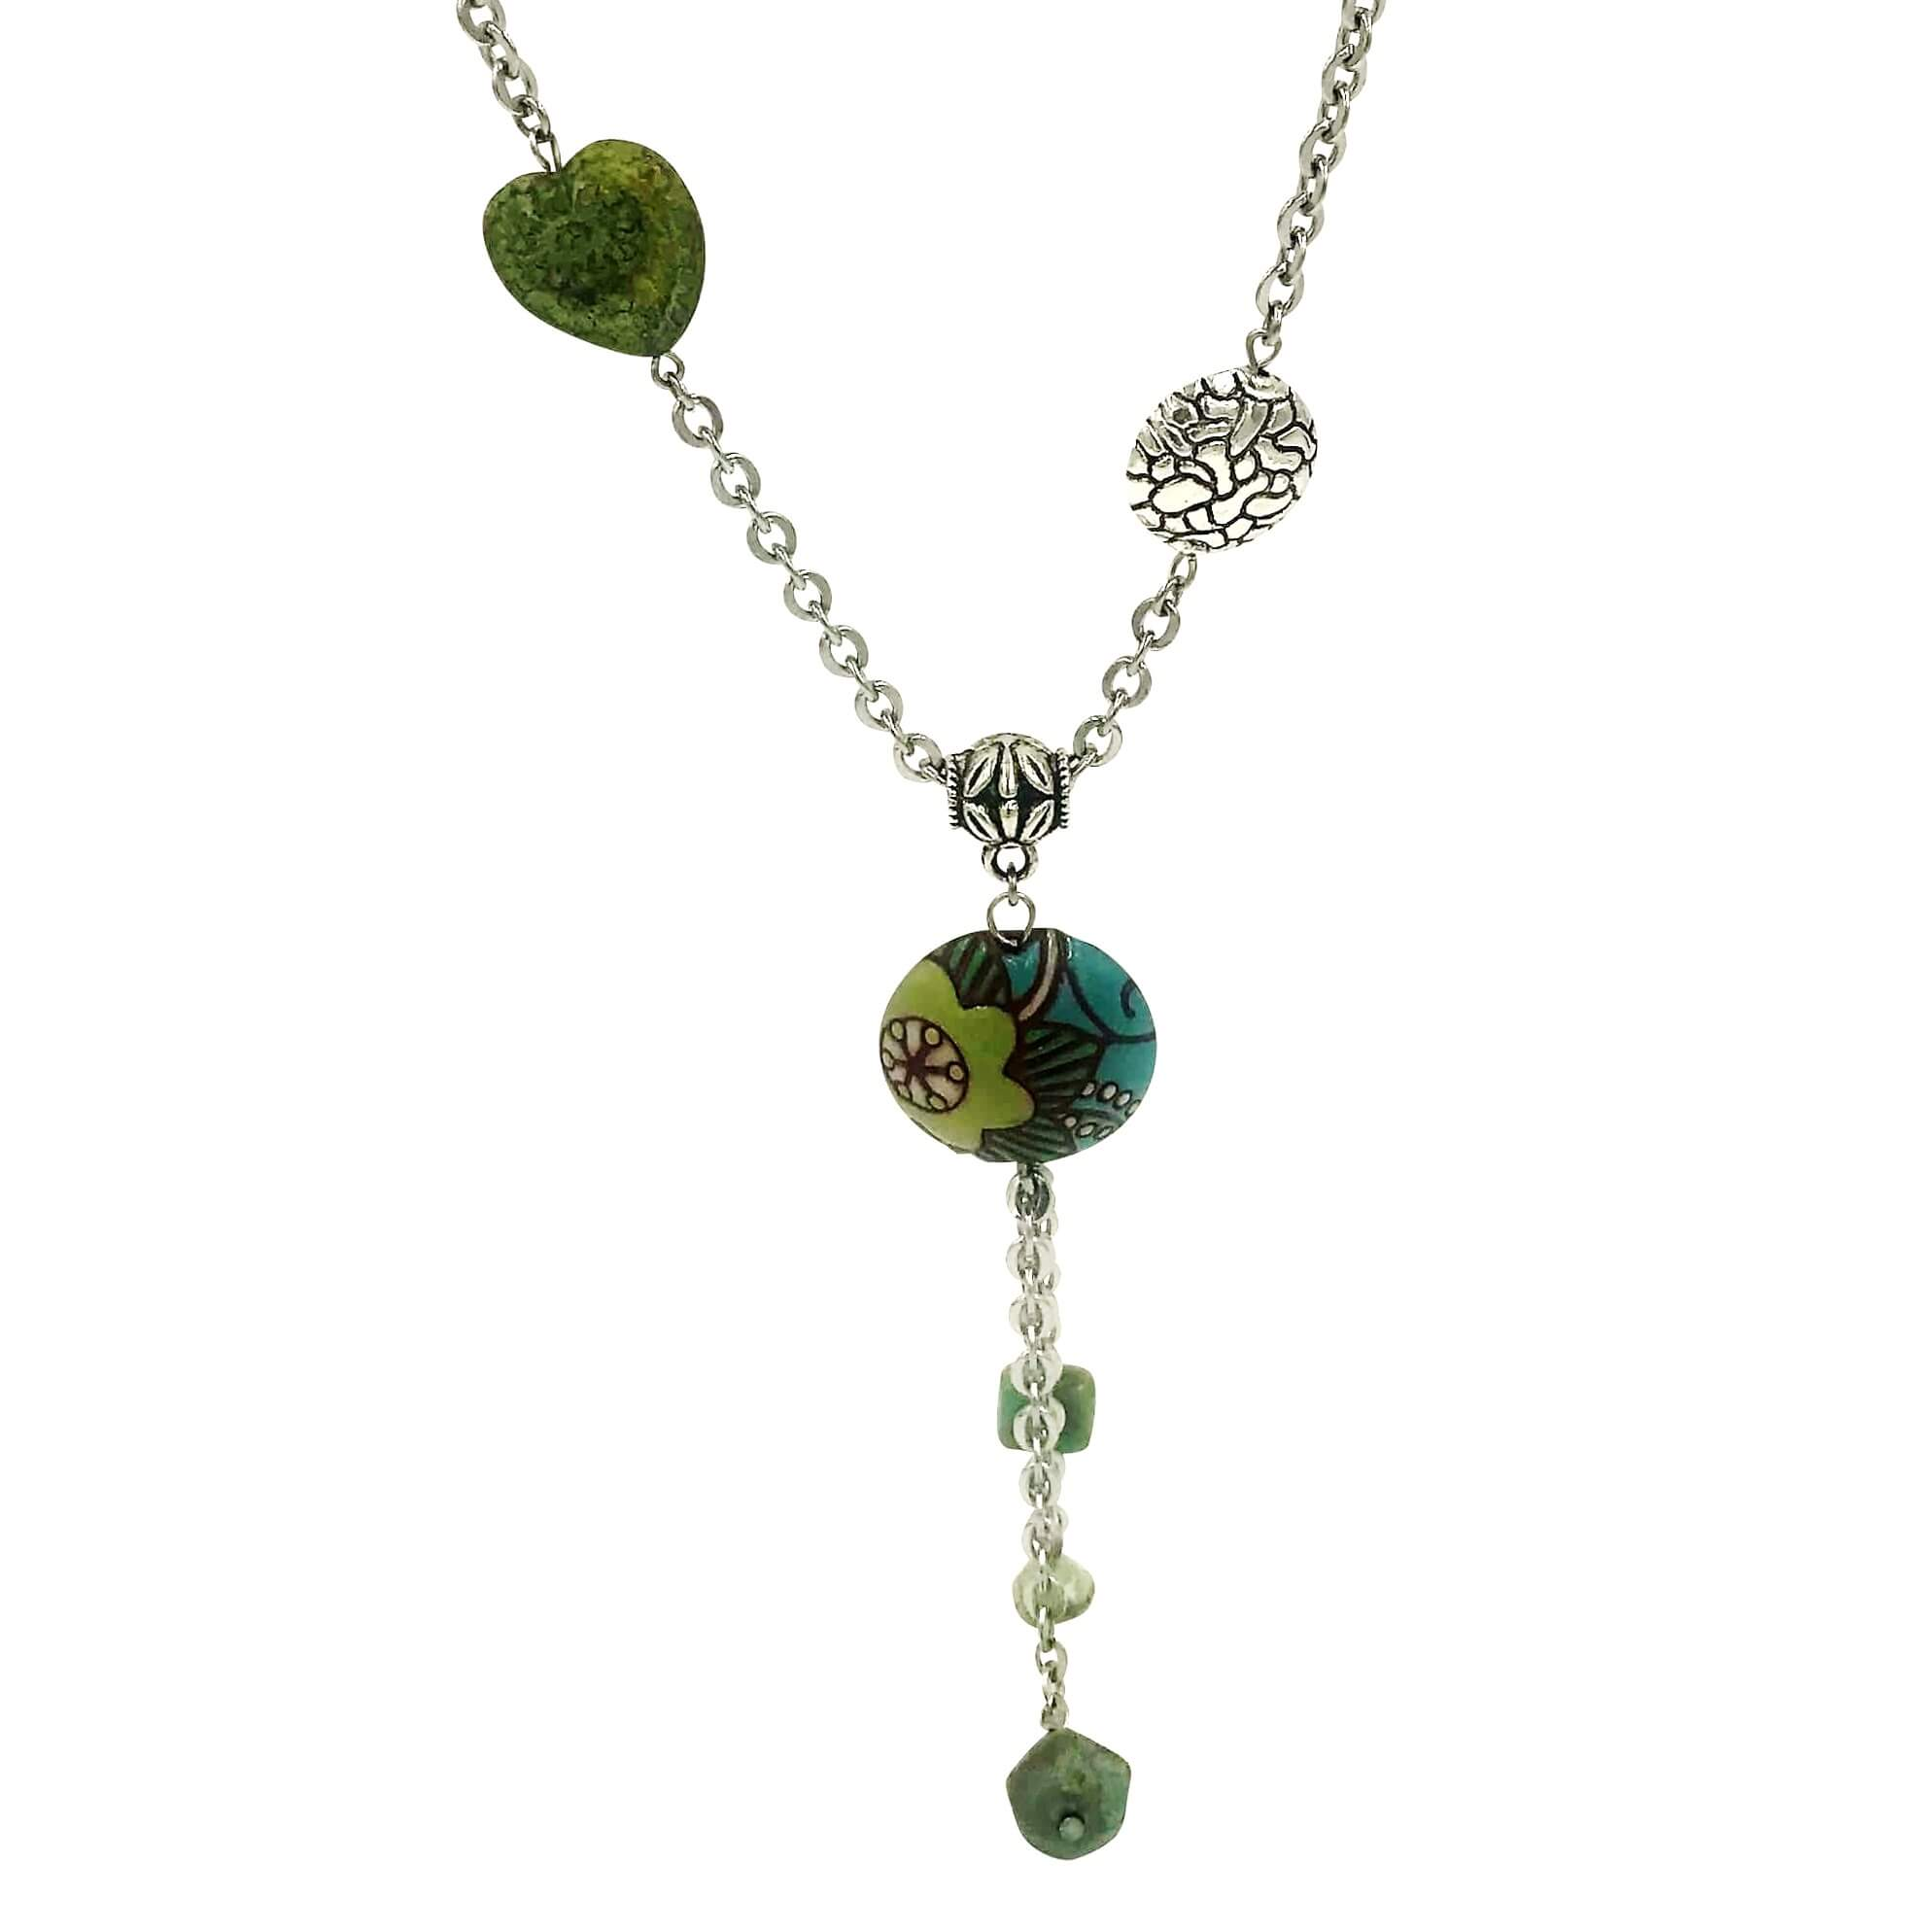 Golem Round Pendant Necklace with Teal and Green and Silver Beads-Necklaces- Creative Jewelry by Marcia